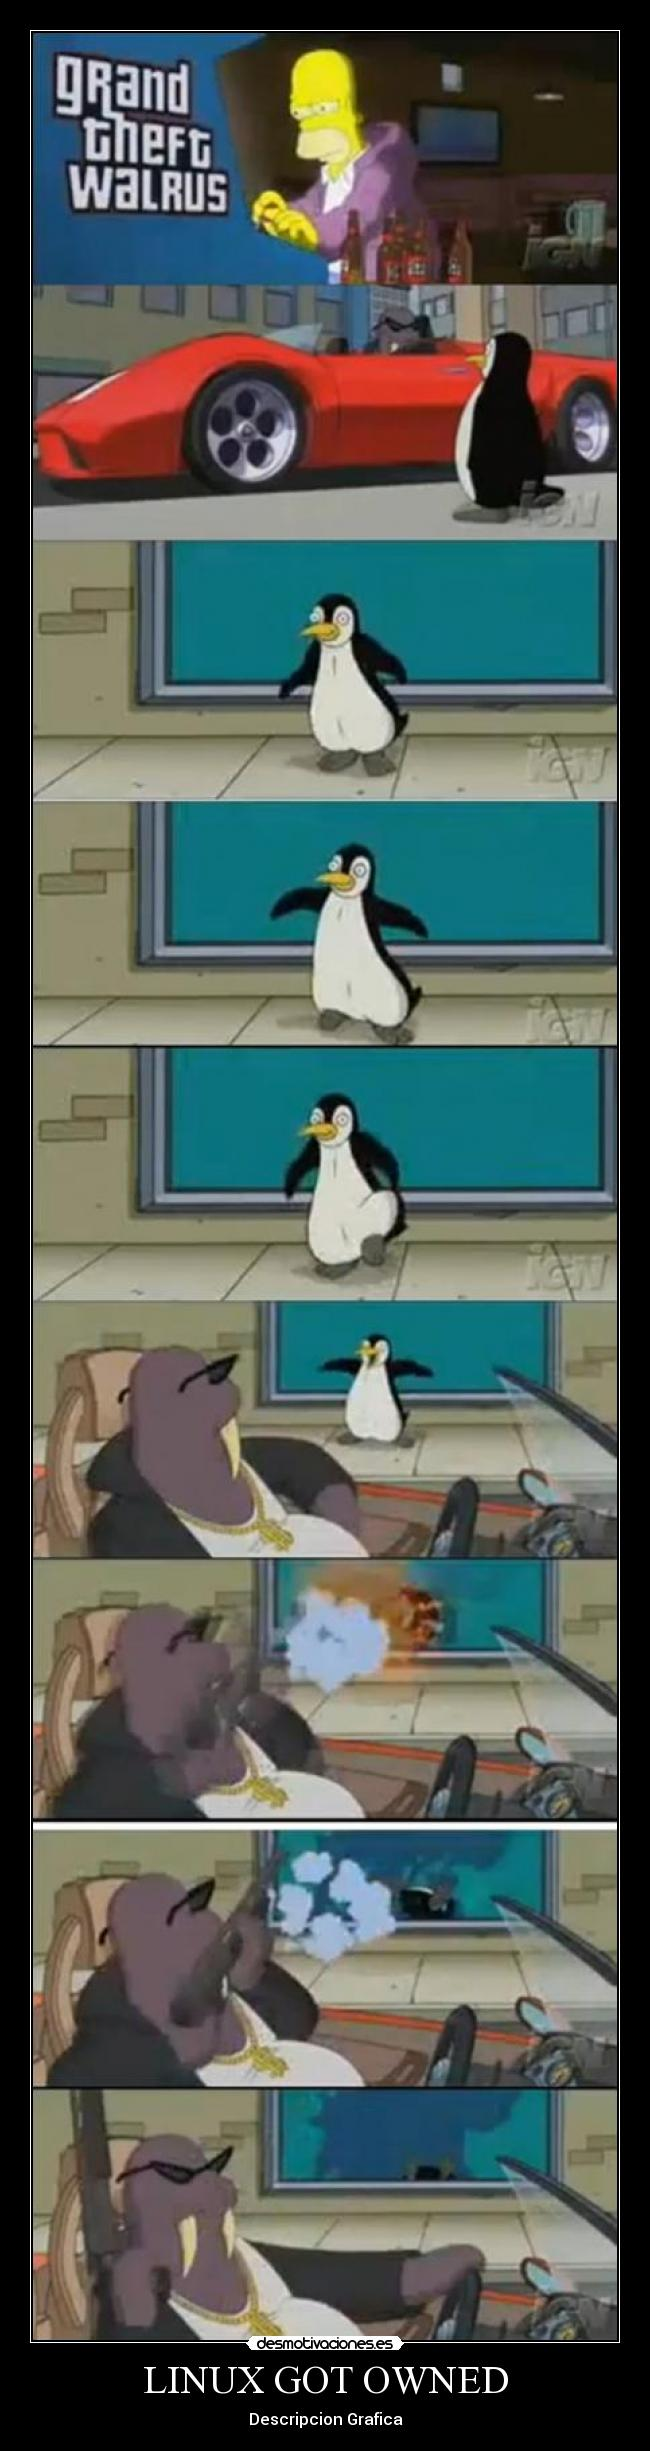 LINUX GOT OWNED - Descripcion Grafica